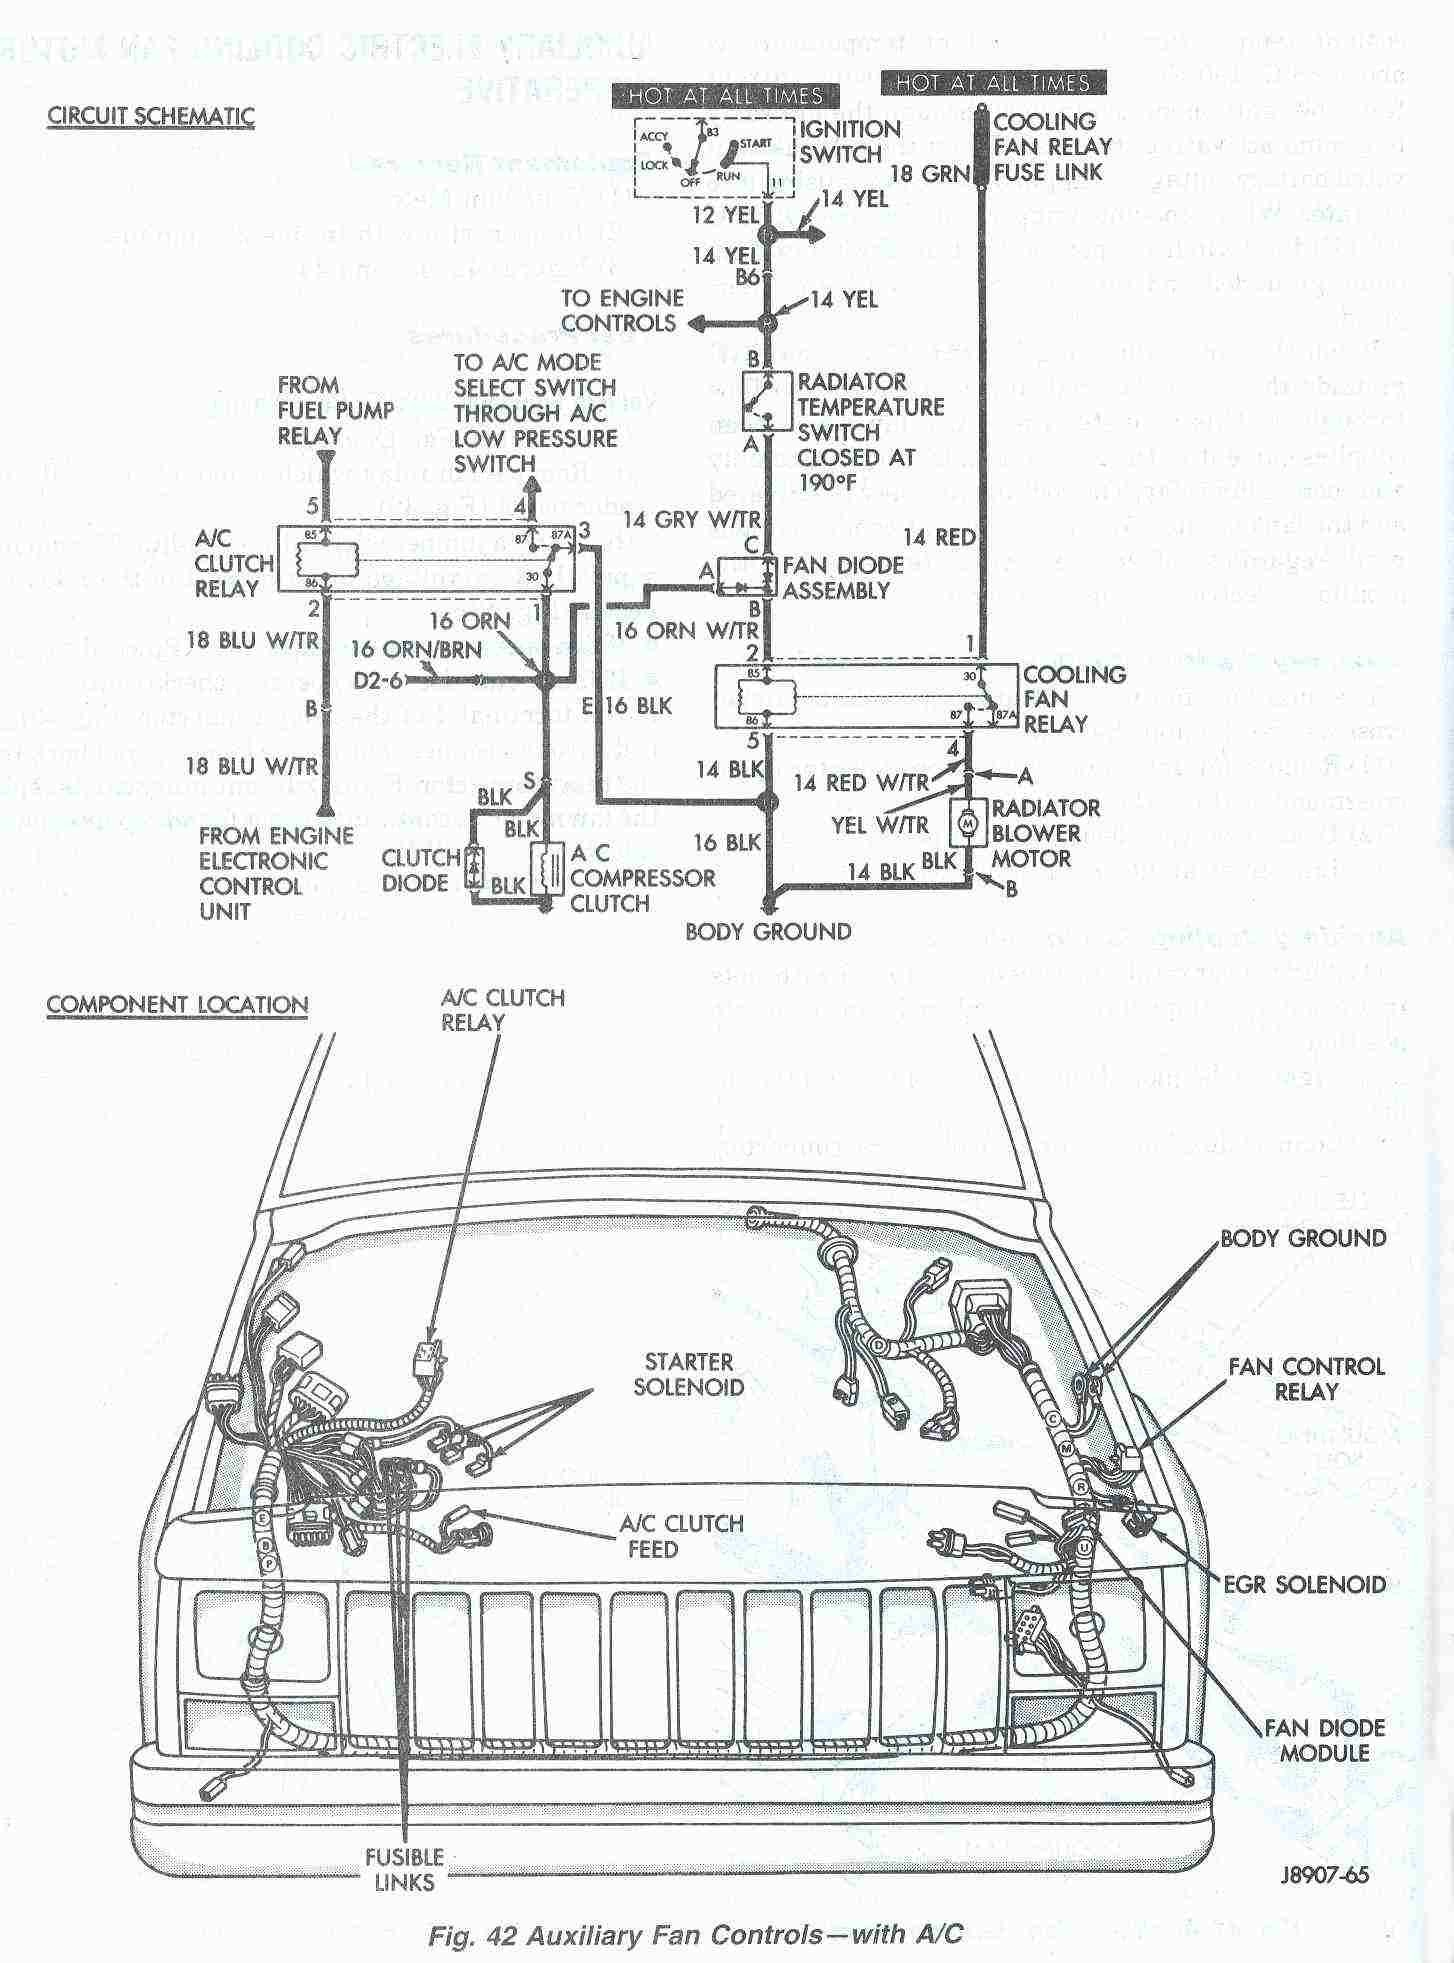 Jeep Grand Cherokee Ignition Wiring Diagram Best Jeep Grand Cherokee Ac  Wiring Diagram New Jeep Wj Ignition Wiring